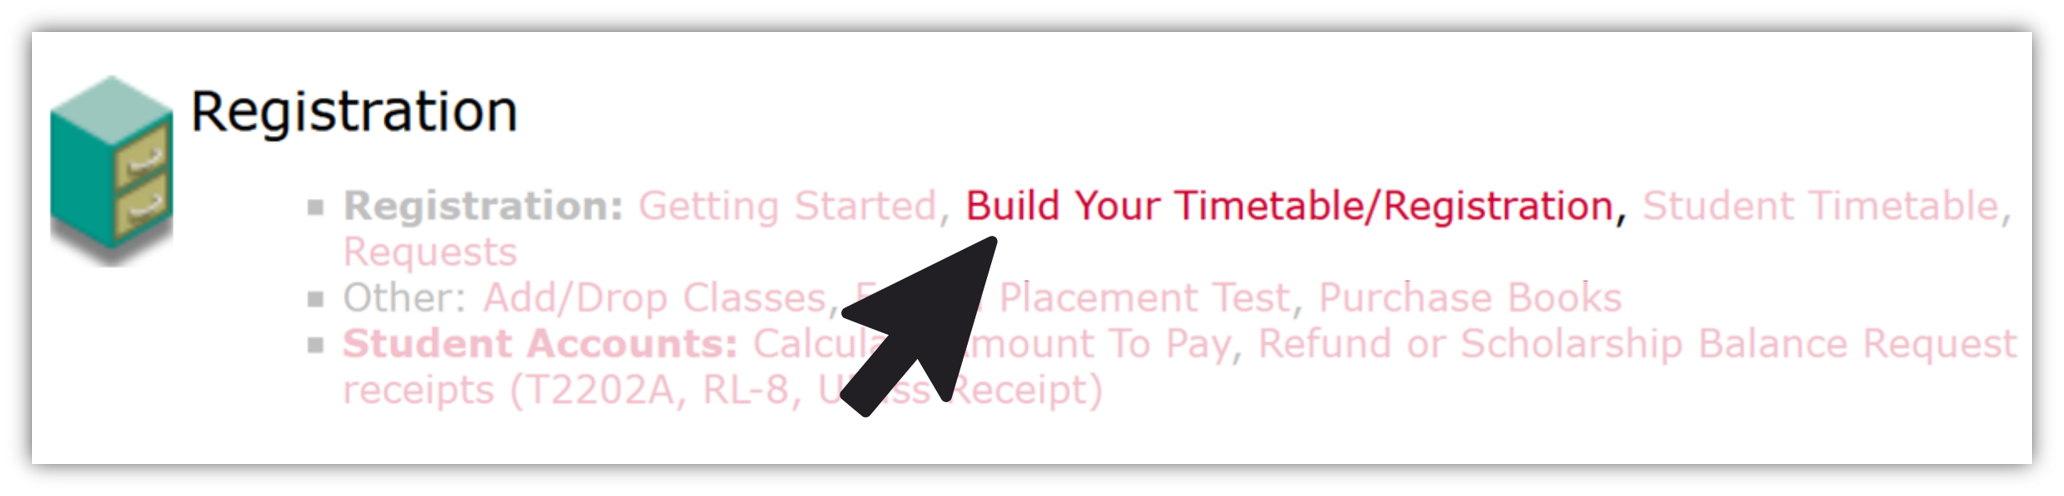 Where to go in Carleton Central to build your timetable and register for courses